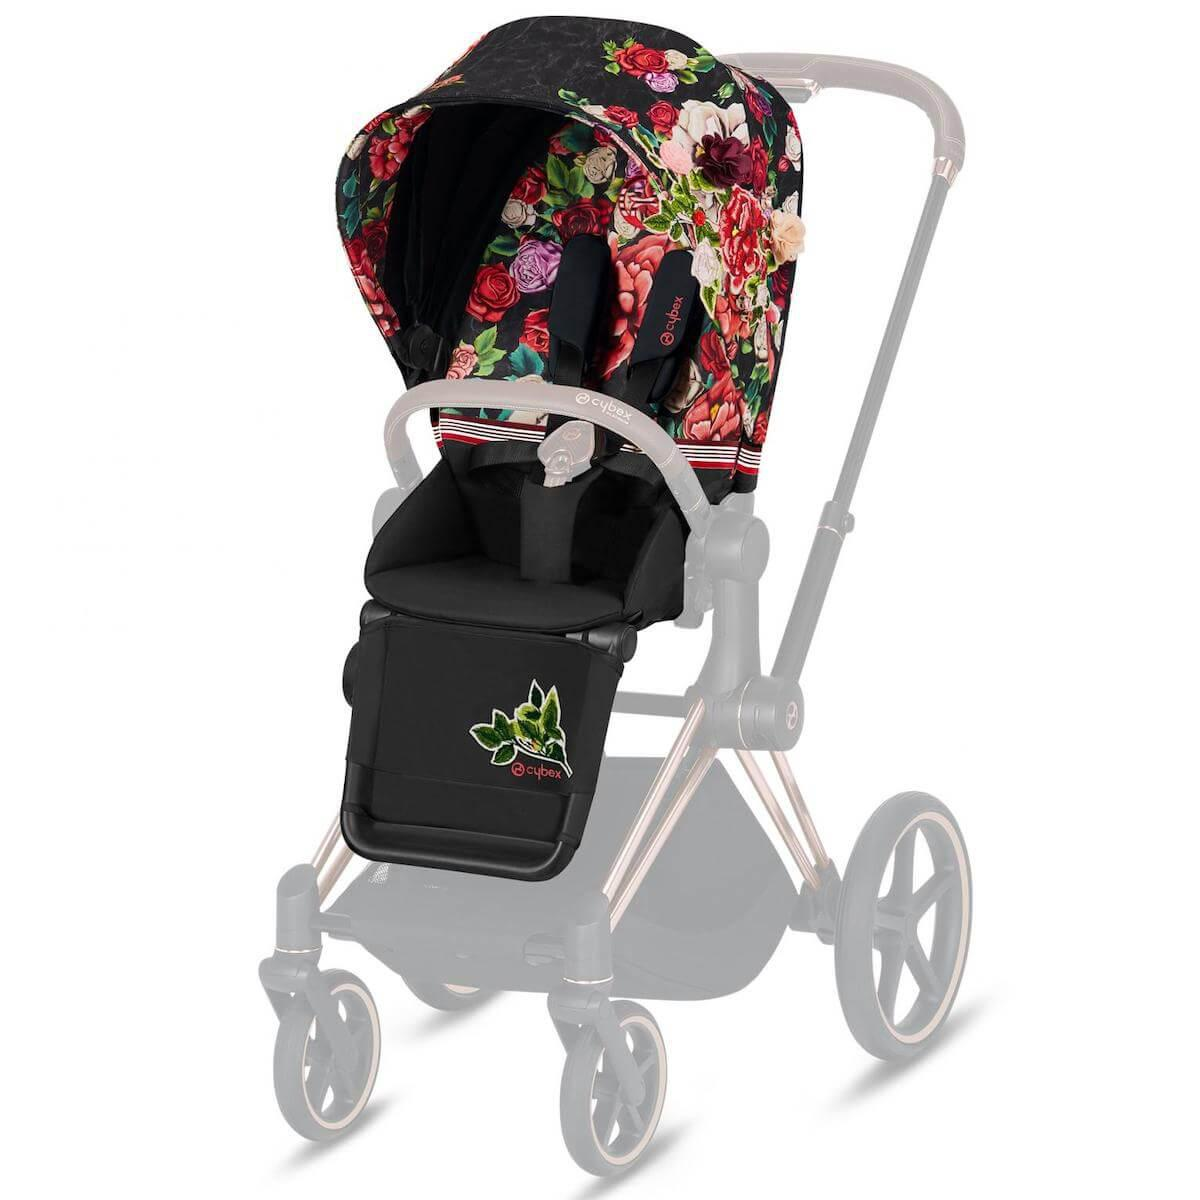 Assise-habillage poussette PRIAM Cybex Spring Blossom Dark-black